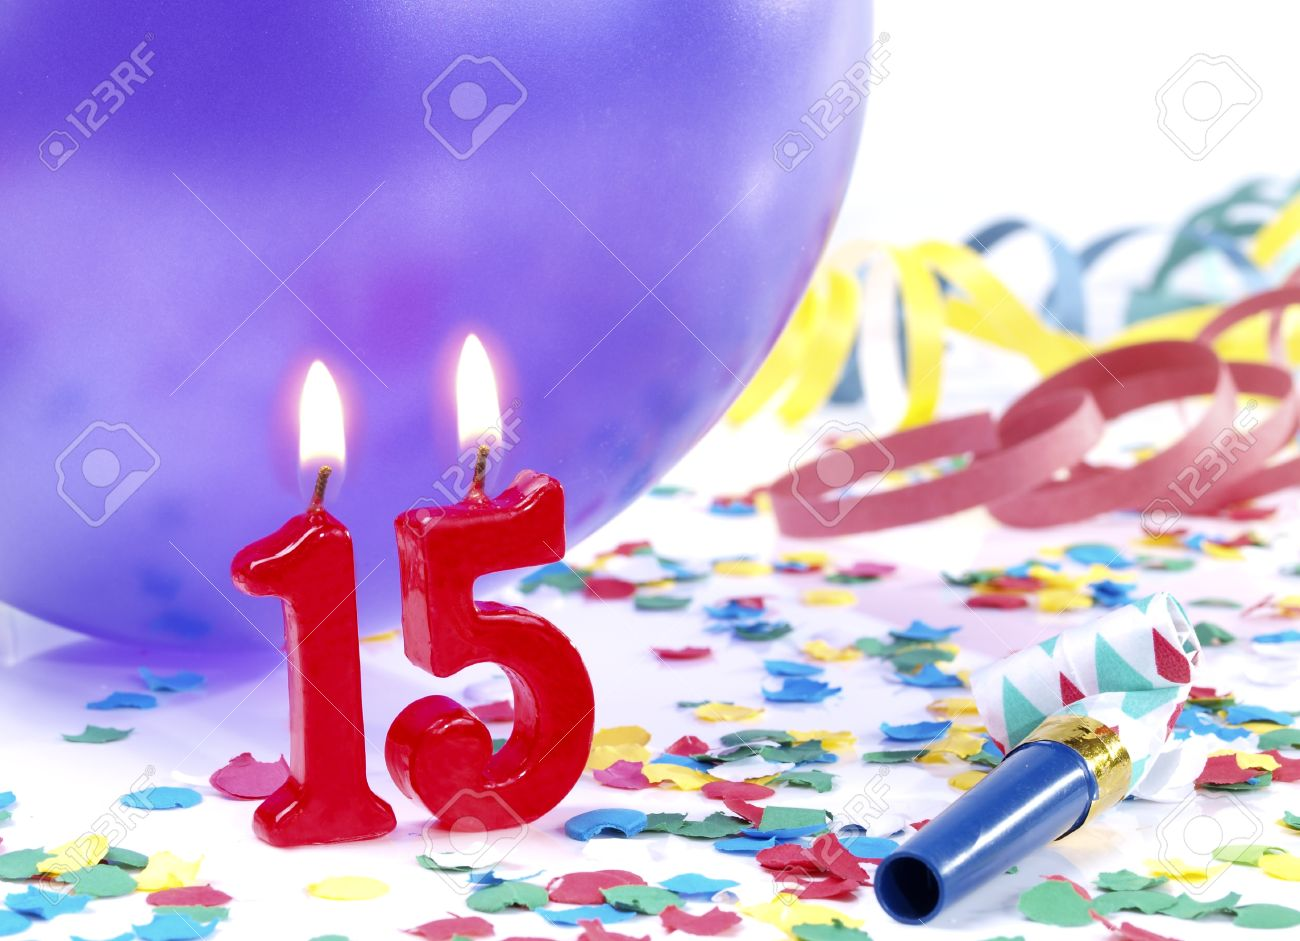 Birthday Candles Showing Nr 15 Stock Photo